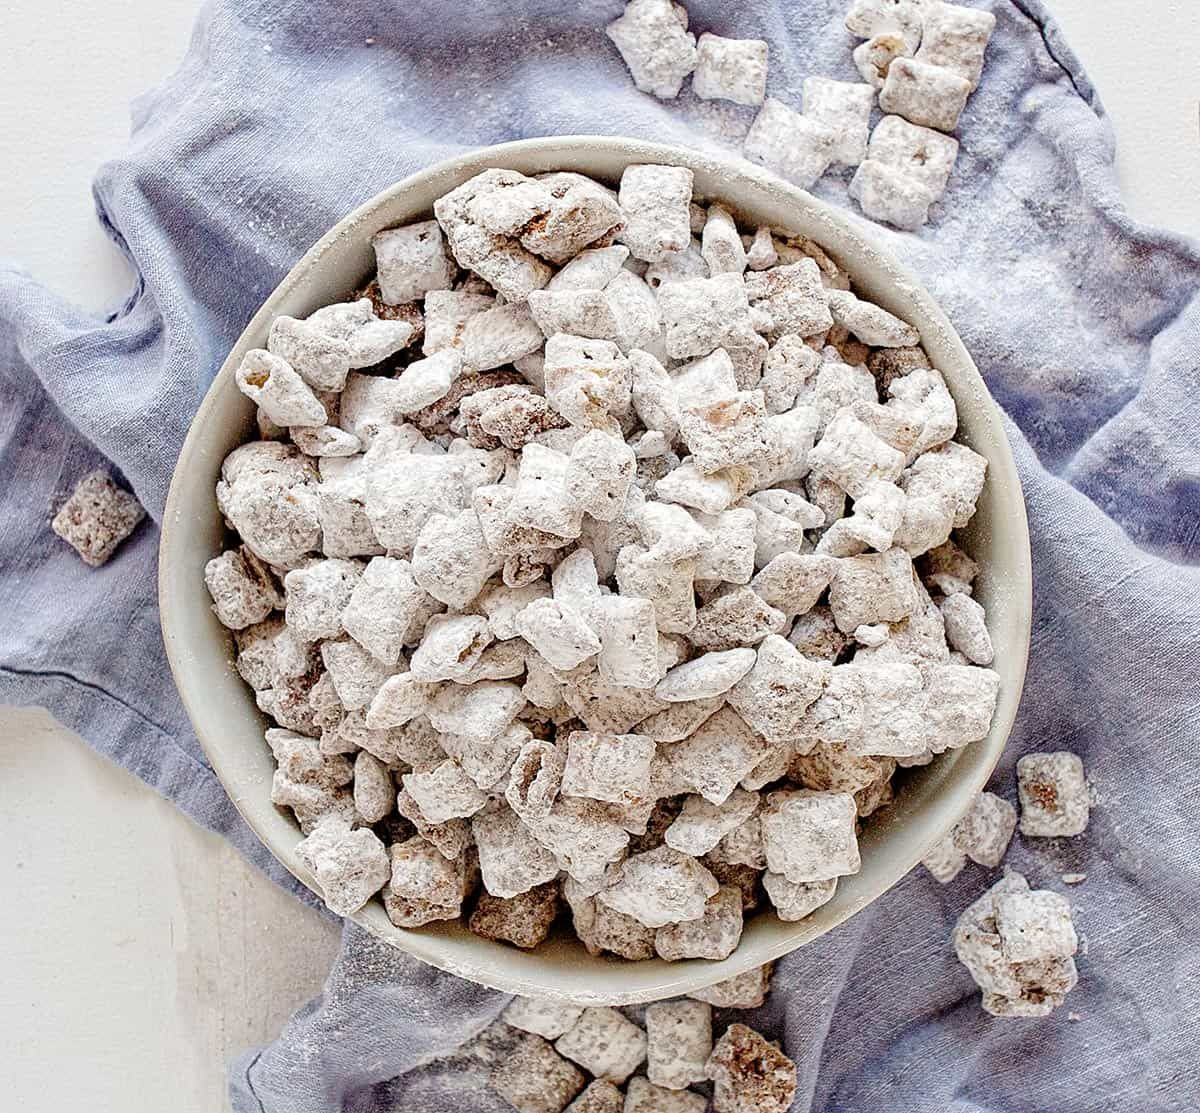 Puppy Chow Is A Snacking Favorite That Uses Peanut Butter